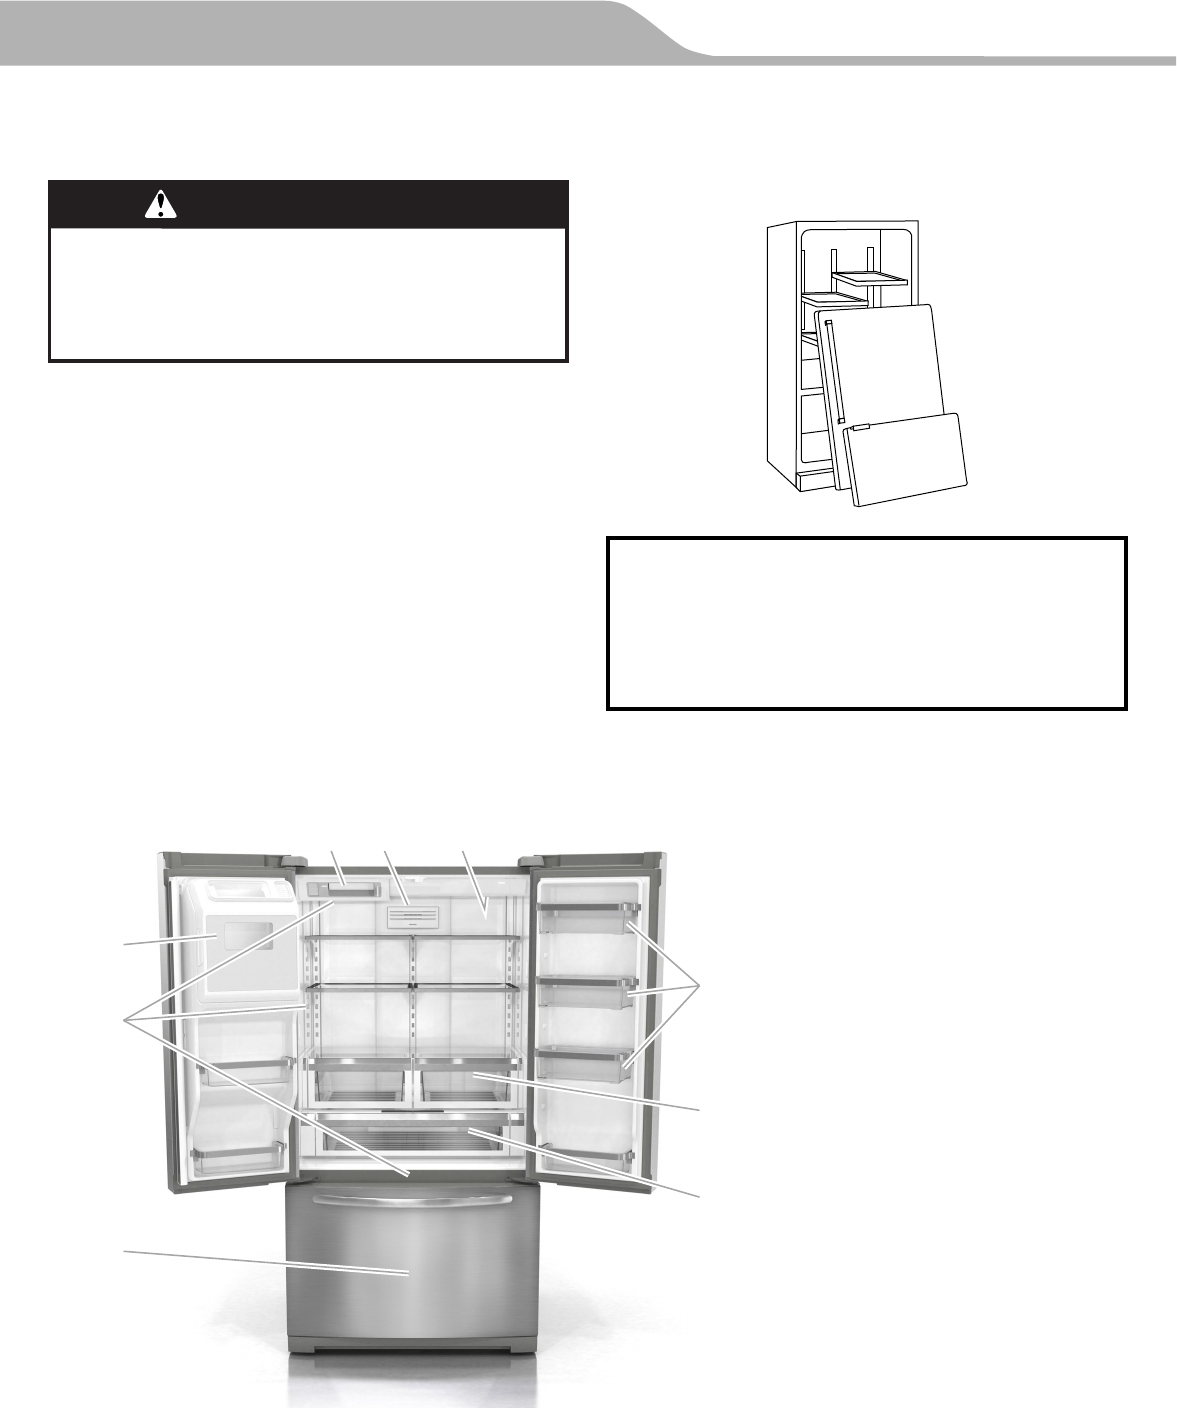 page 44 of kitchenaid refrigerator kfis29bbms user guide